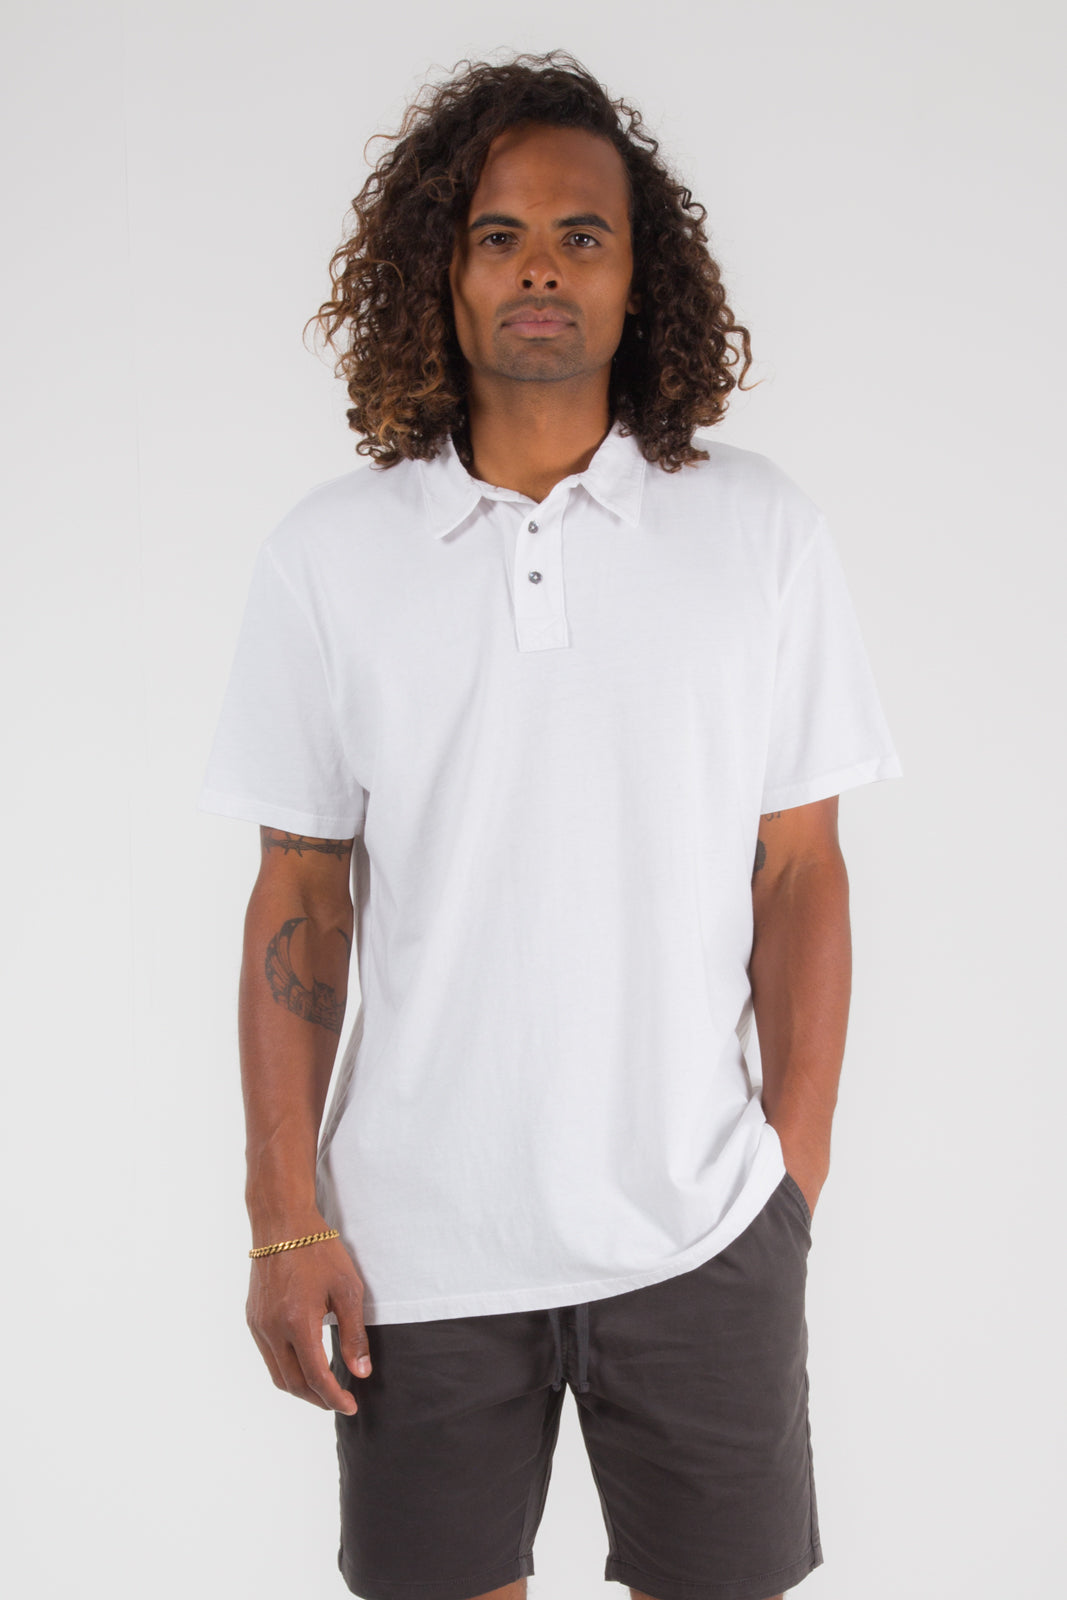 Classic Polo Shirt American Made Supply Co